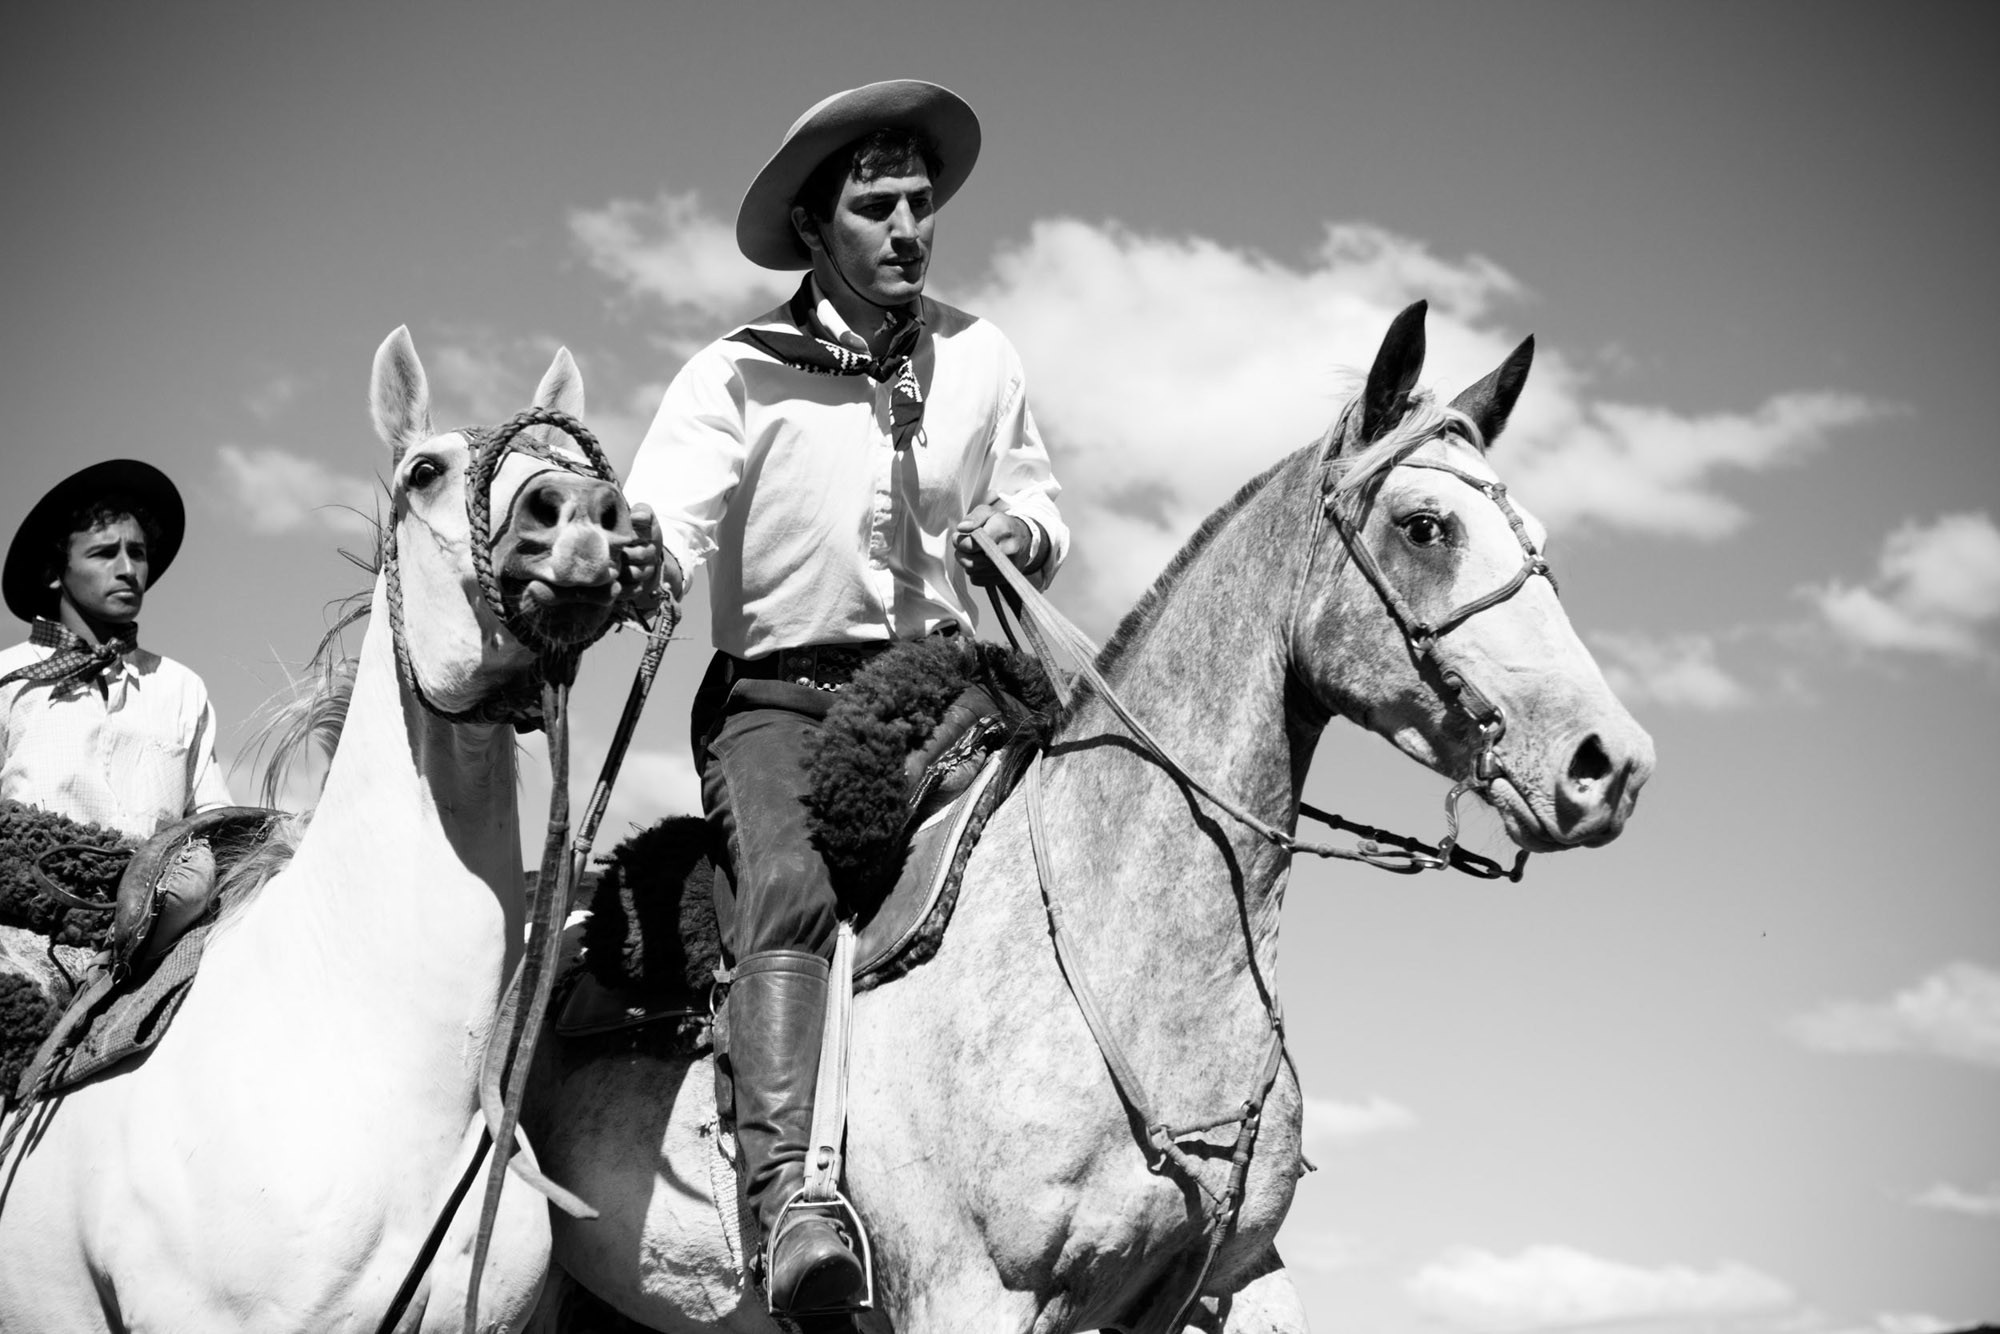 The native crillio horse is known for its endurance and ability to survive in harsh conditions. UNESCO has designated the breed to be an aspect of Uruguay's intangible cultural heritage ©James Fisher 2017 All Rights Reserved